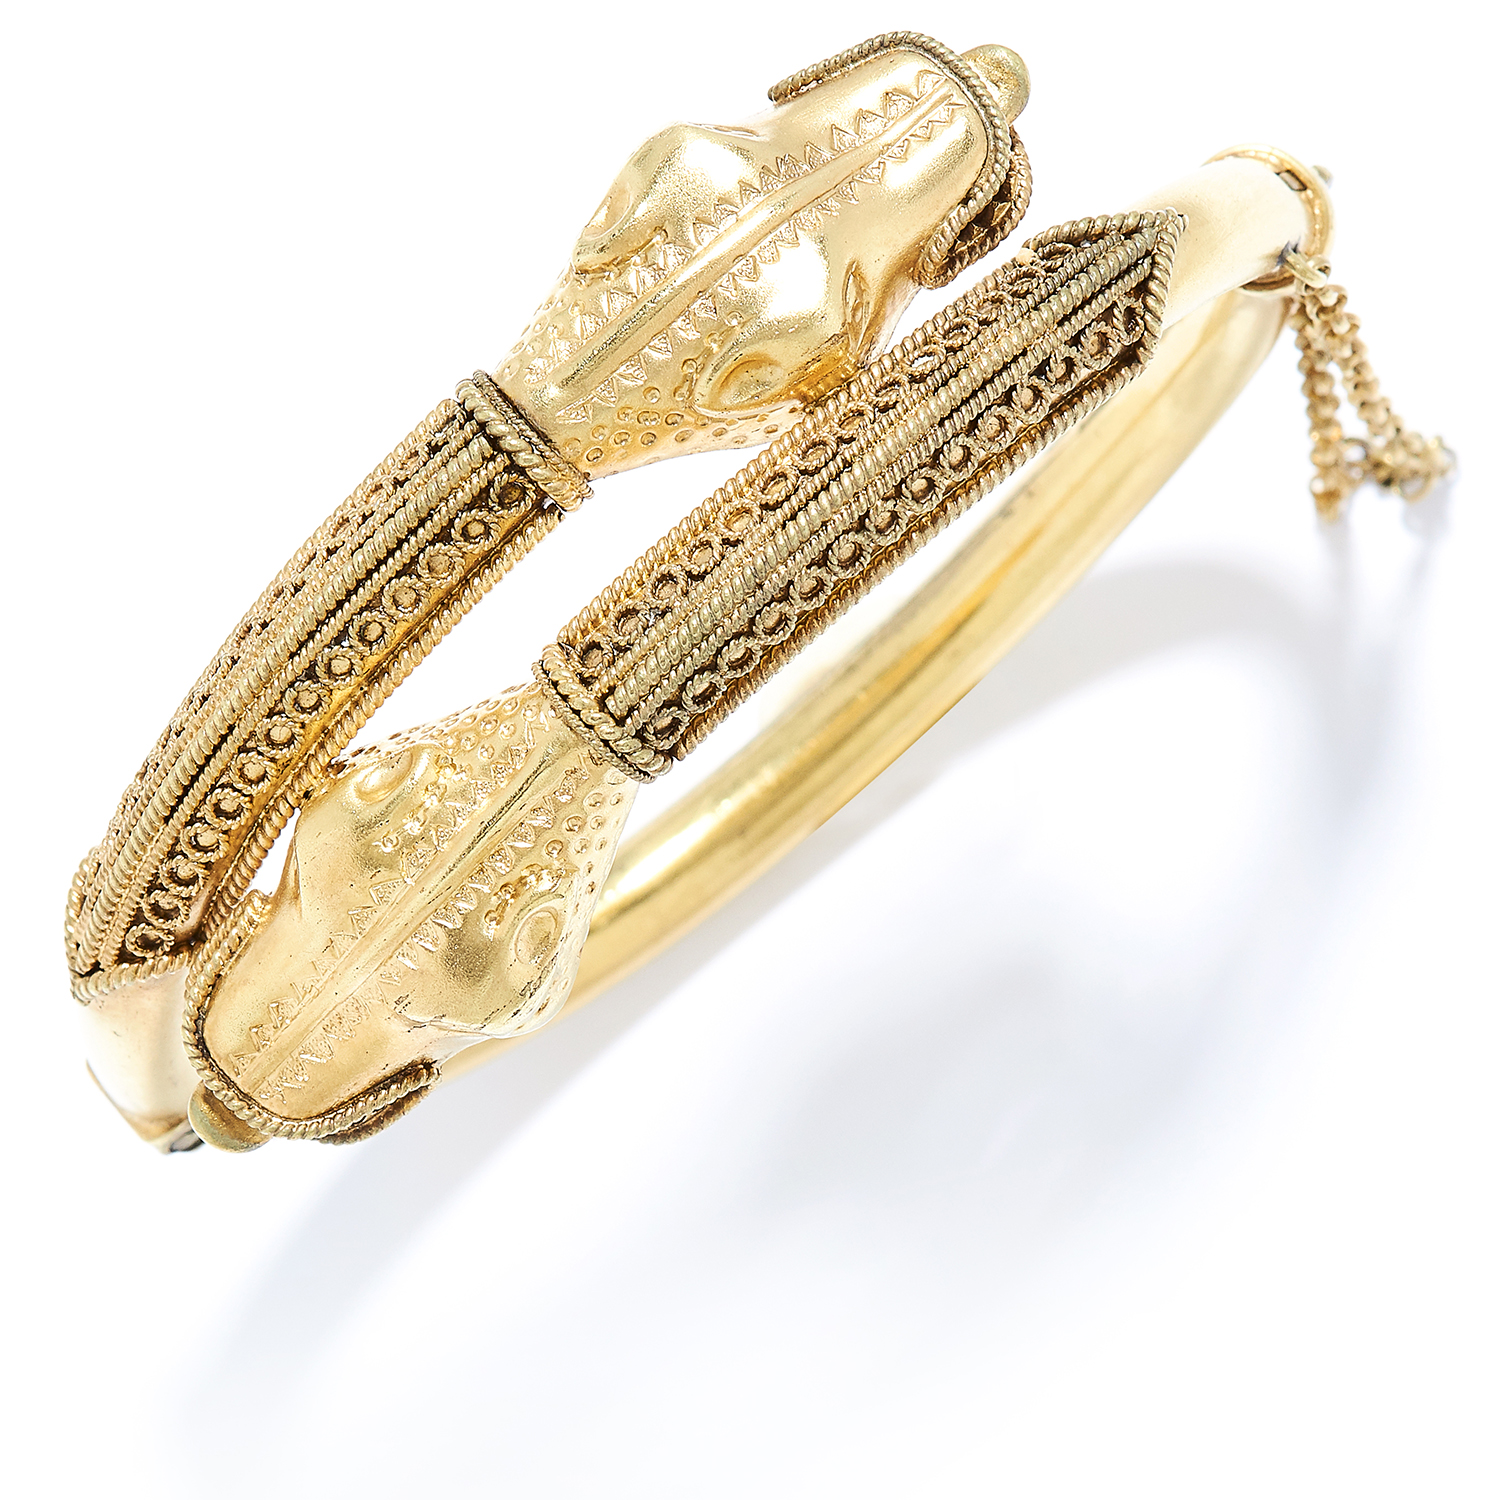 Los 14 - ANTIQUE GOLD SNAKE / DRAGON BANGLE in high carat yellow gold, depicting two dragon heads coiling